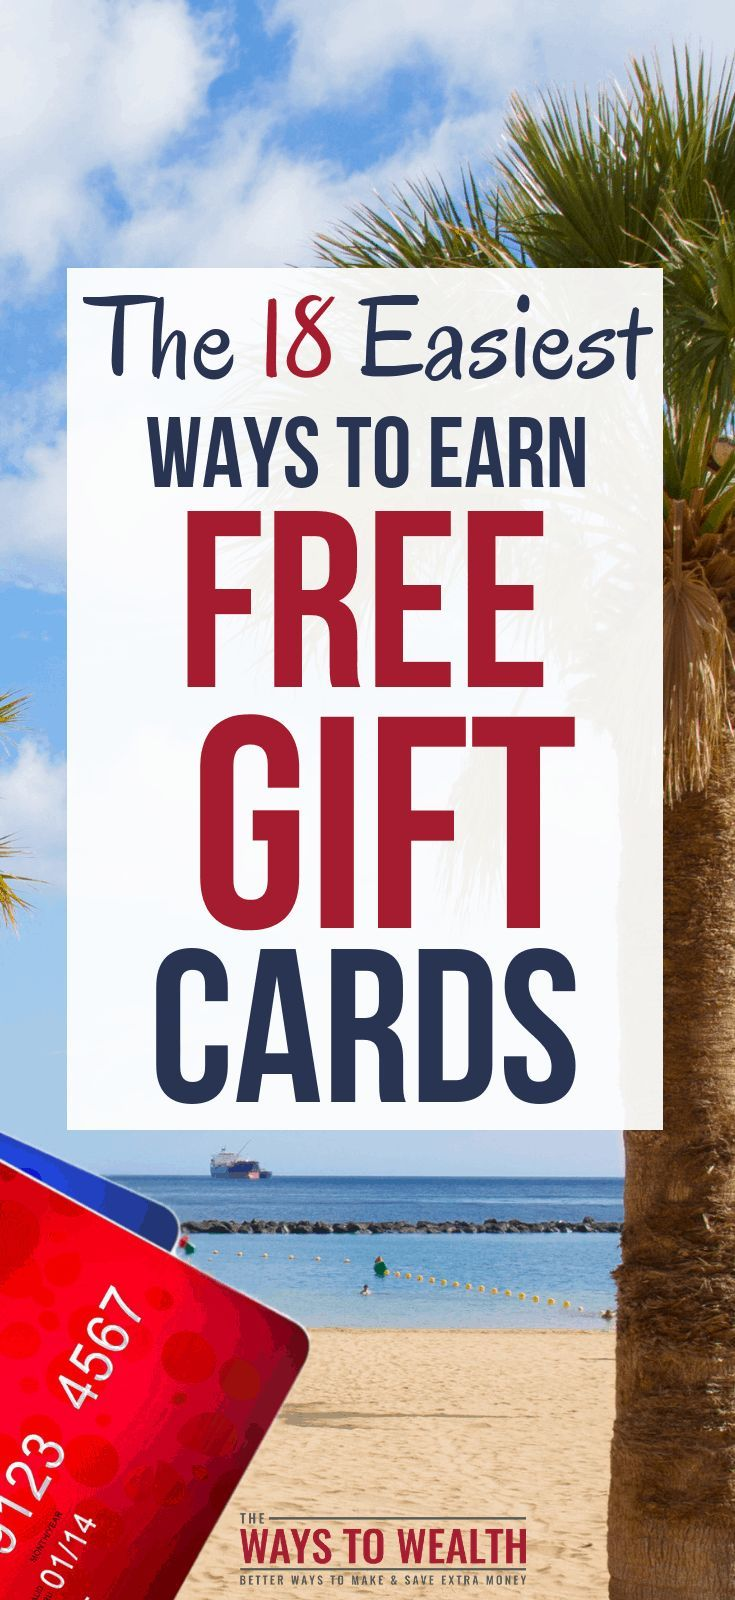 17 easy ways to get free gift cards free gift cards